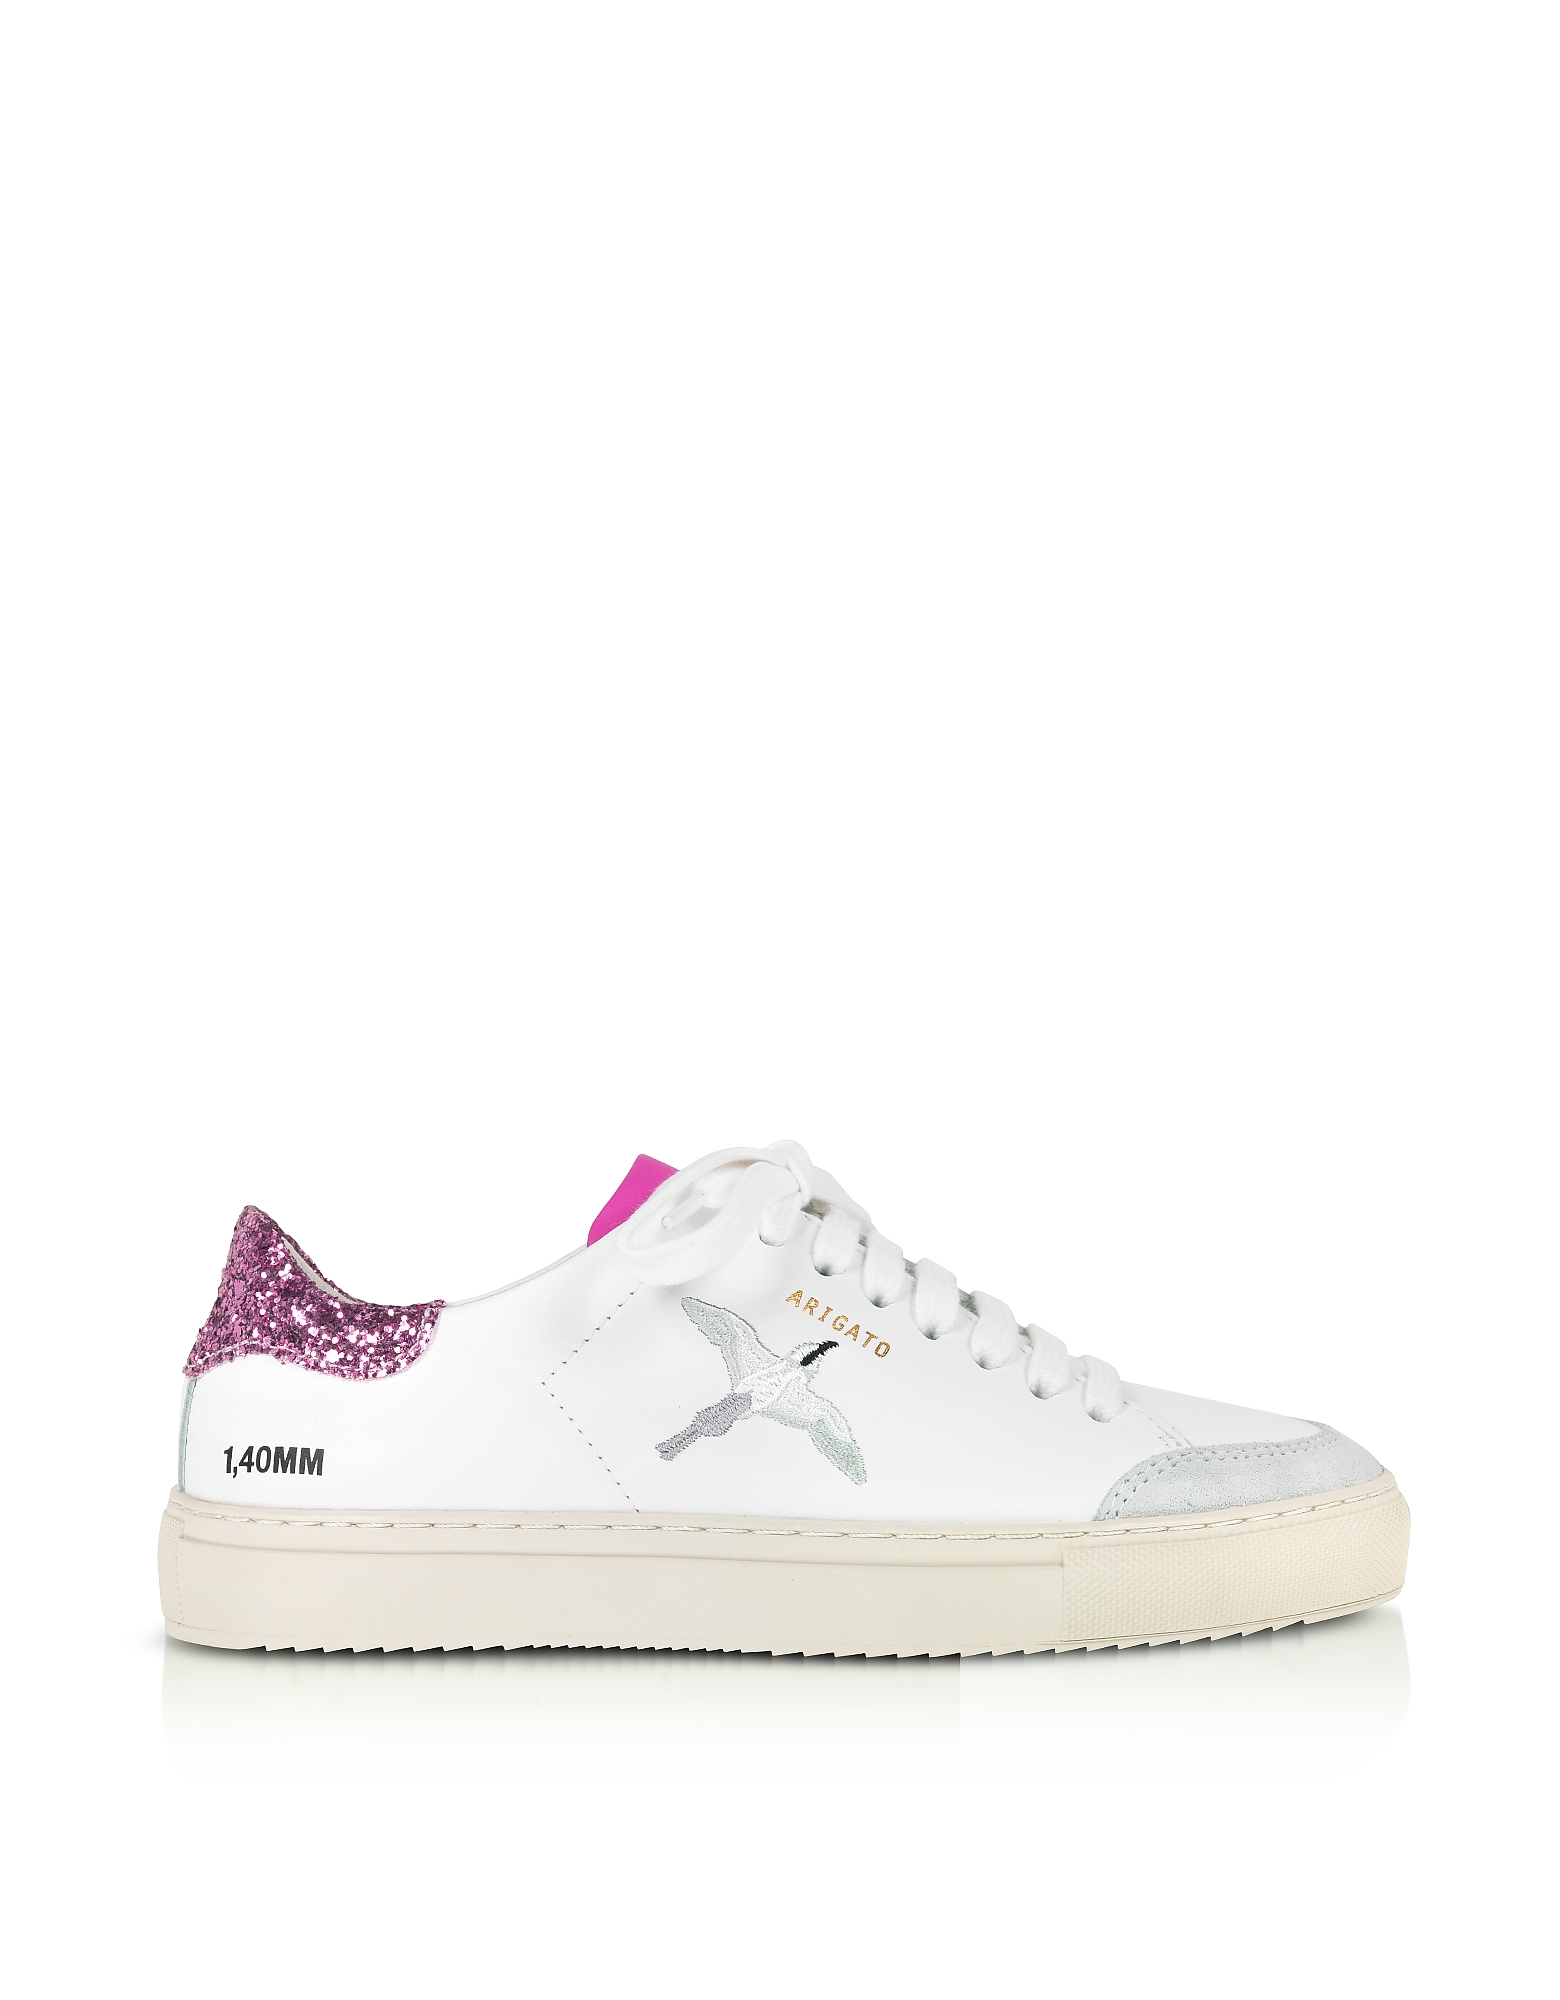 Axel Arigato Designer Shoes, Clean 90 Triple Bird White, Pink Glitter & Fuchsia Leather Women's Sneakers